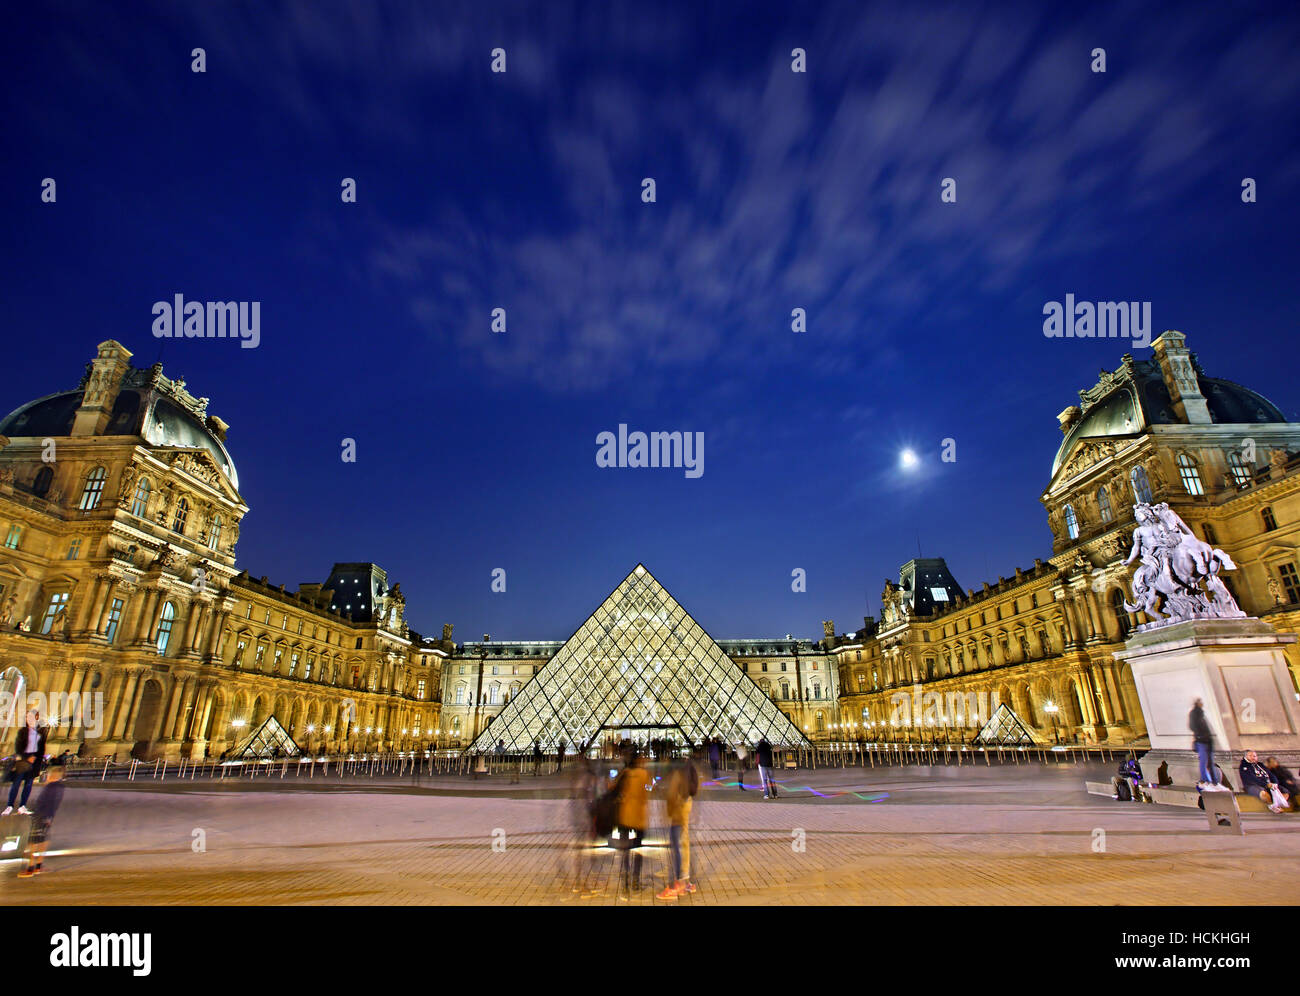 The Louvre Museum (Musée du Louvre) and its glass pyramid (architect: I.M. Pei), Paris, France. - Stock Image